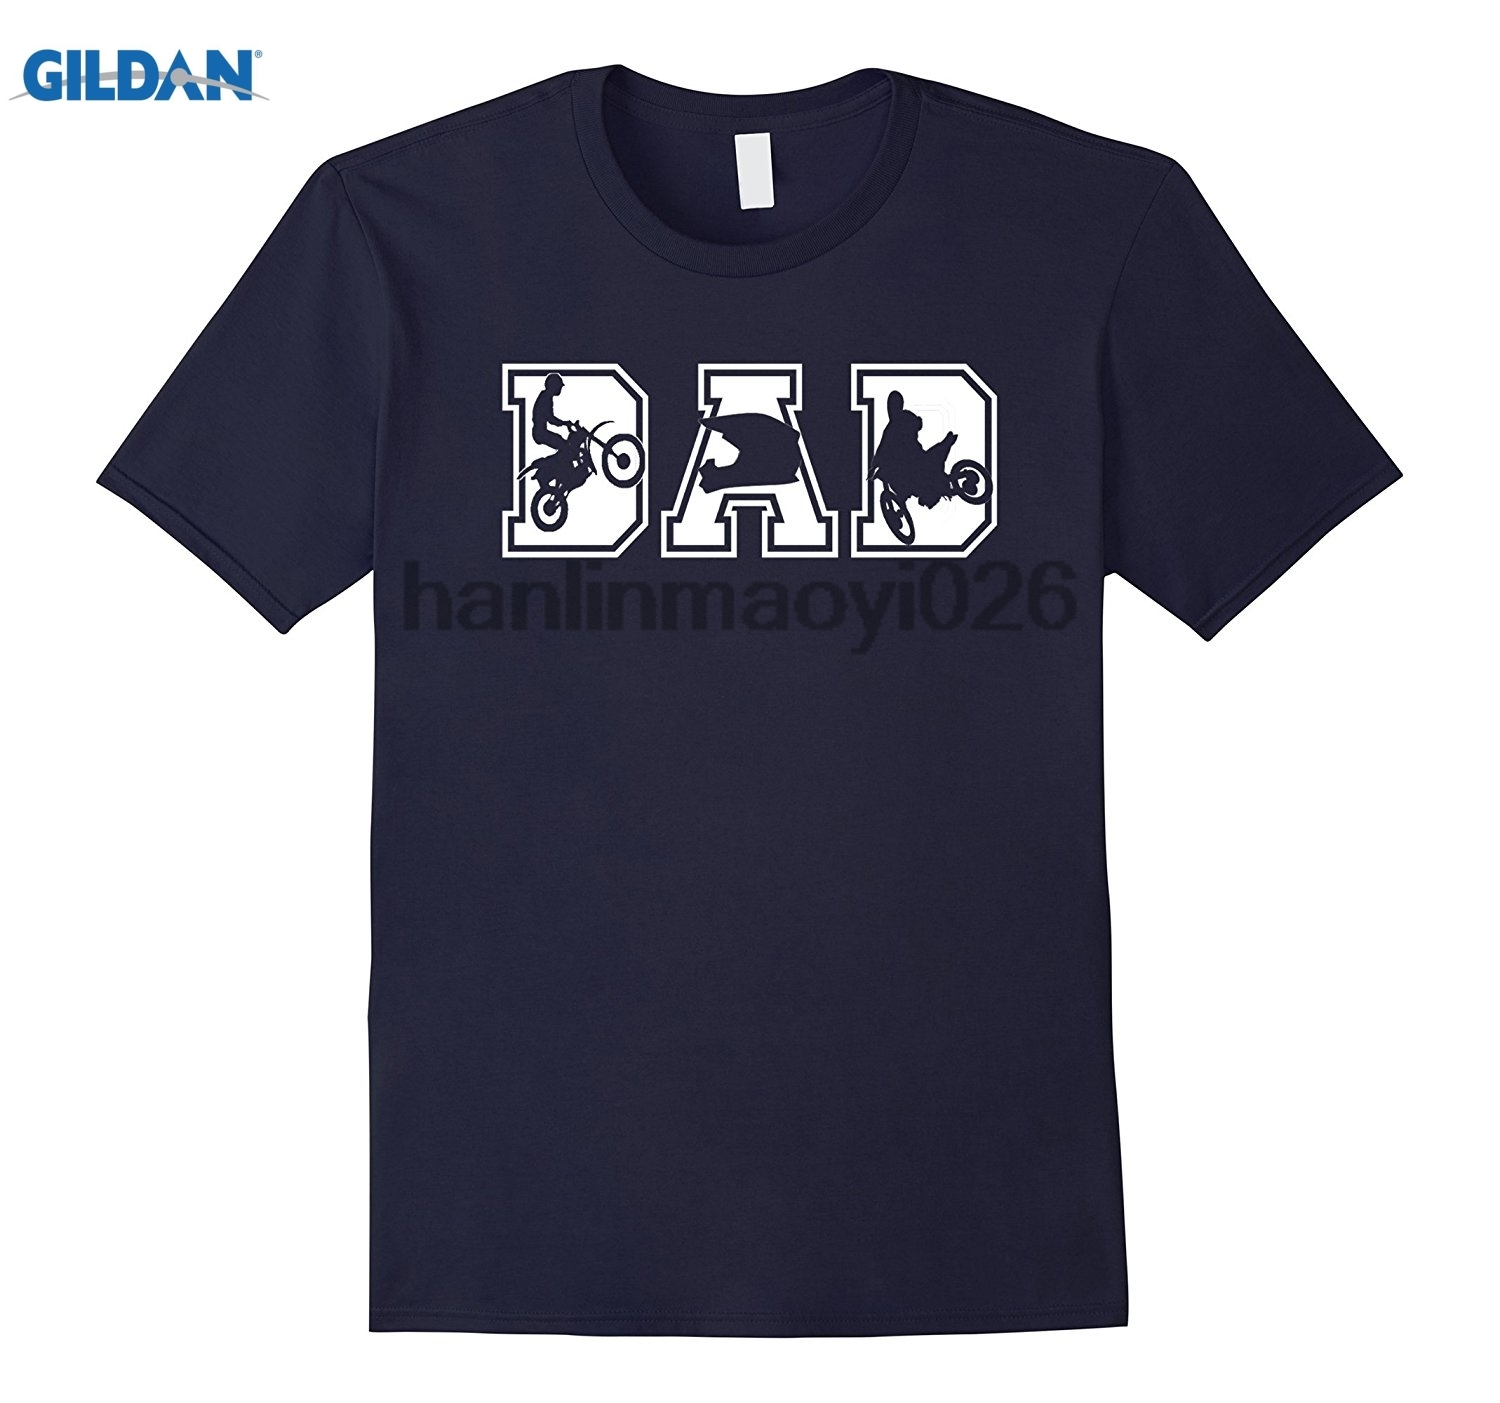 GILDAN Mens Motocross Dad Funny Fathers Day T-Shirt